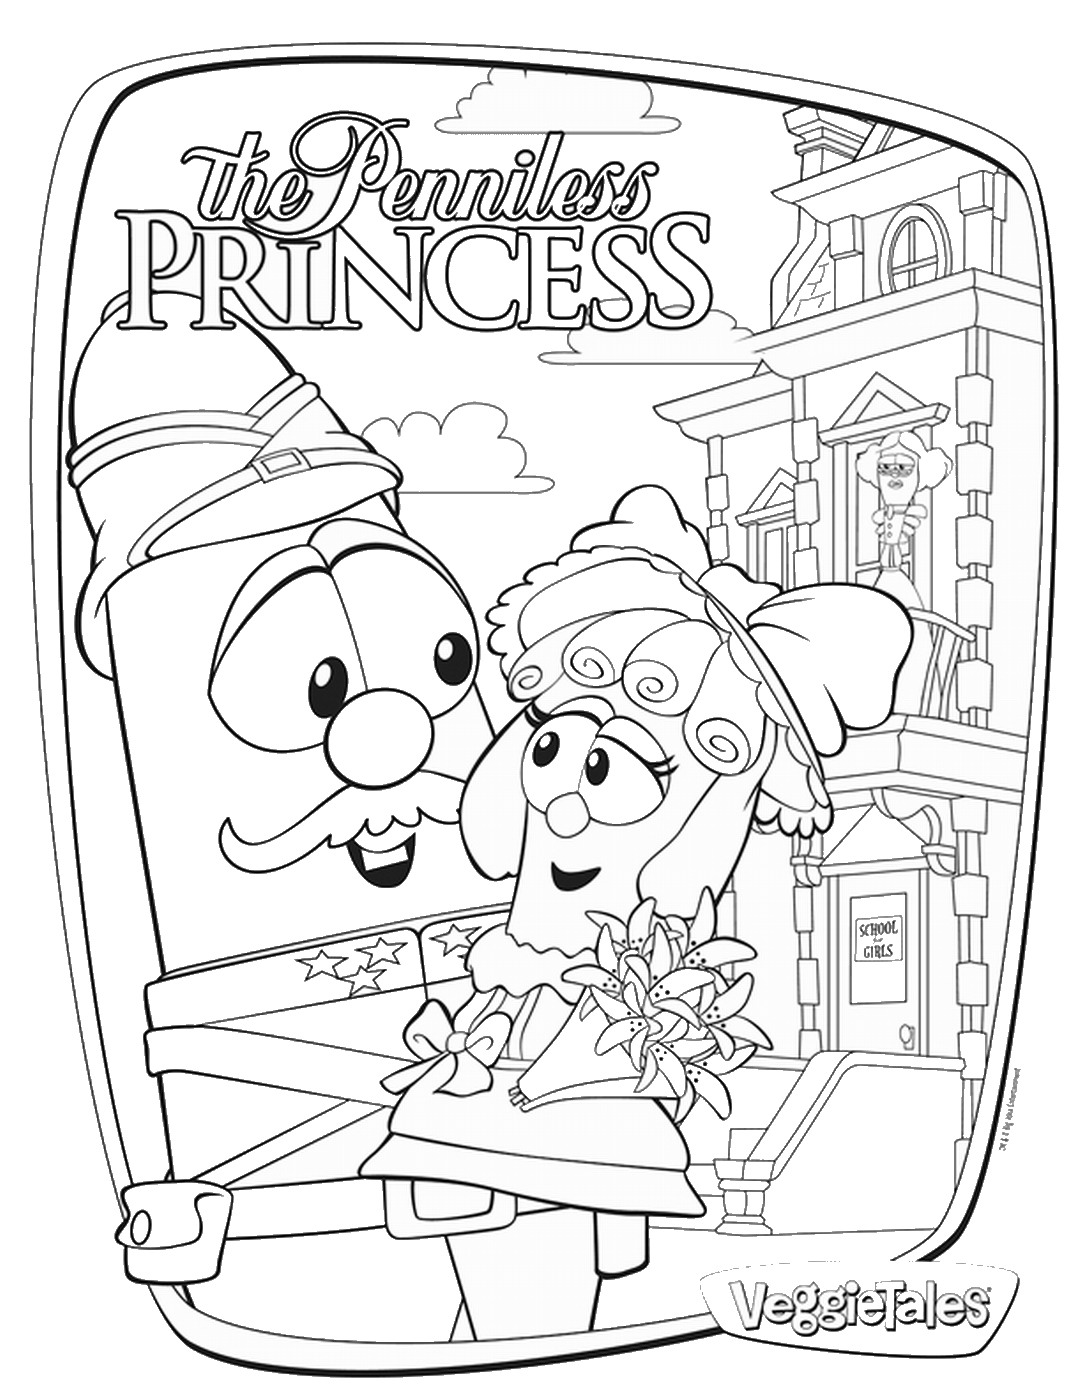 veggietales coloring pages sweetpea beauty veggie tales movie for girls giveaway veggietales pages coloring